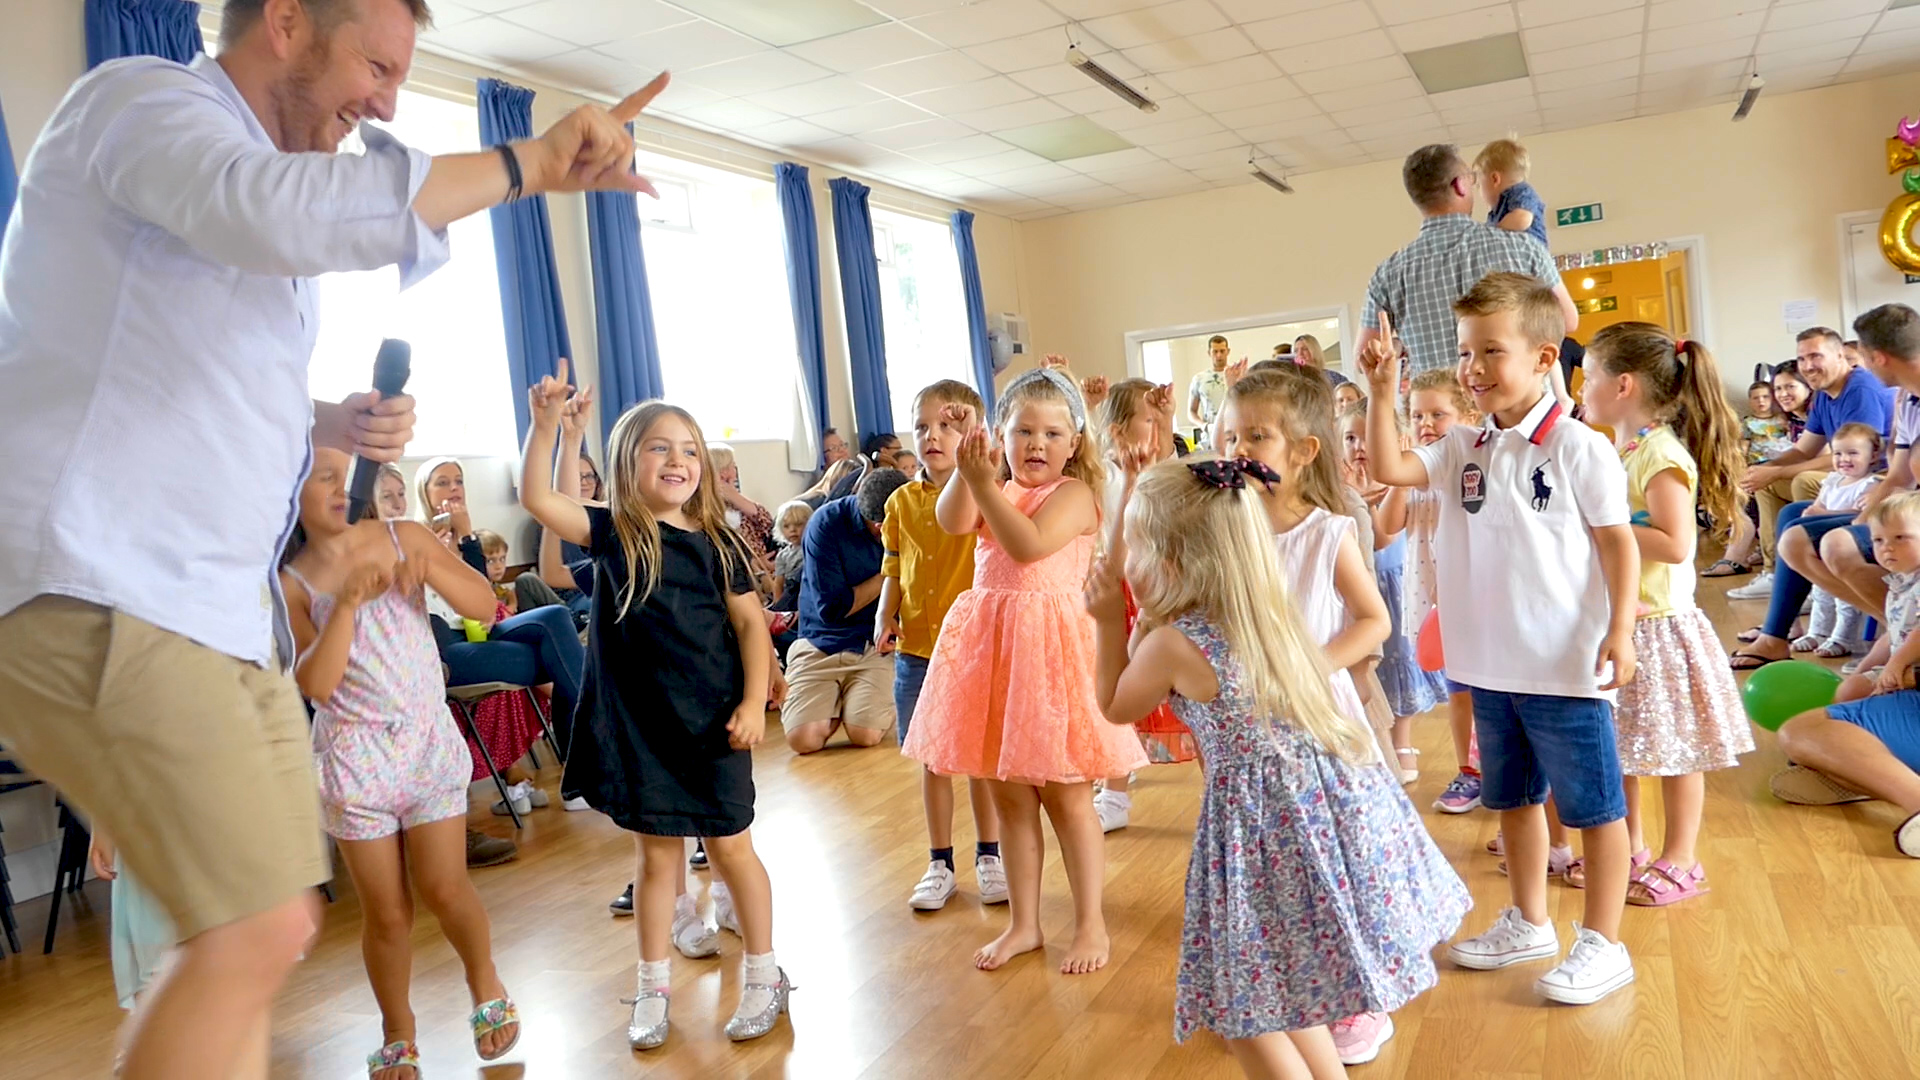 Kids Party Essex 2.jpg